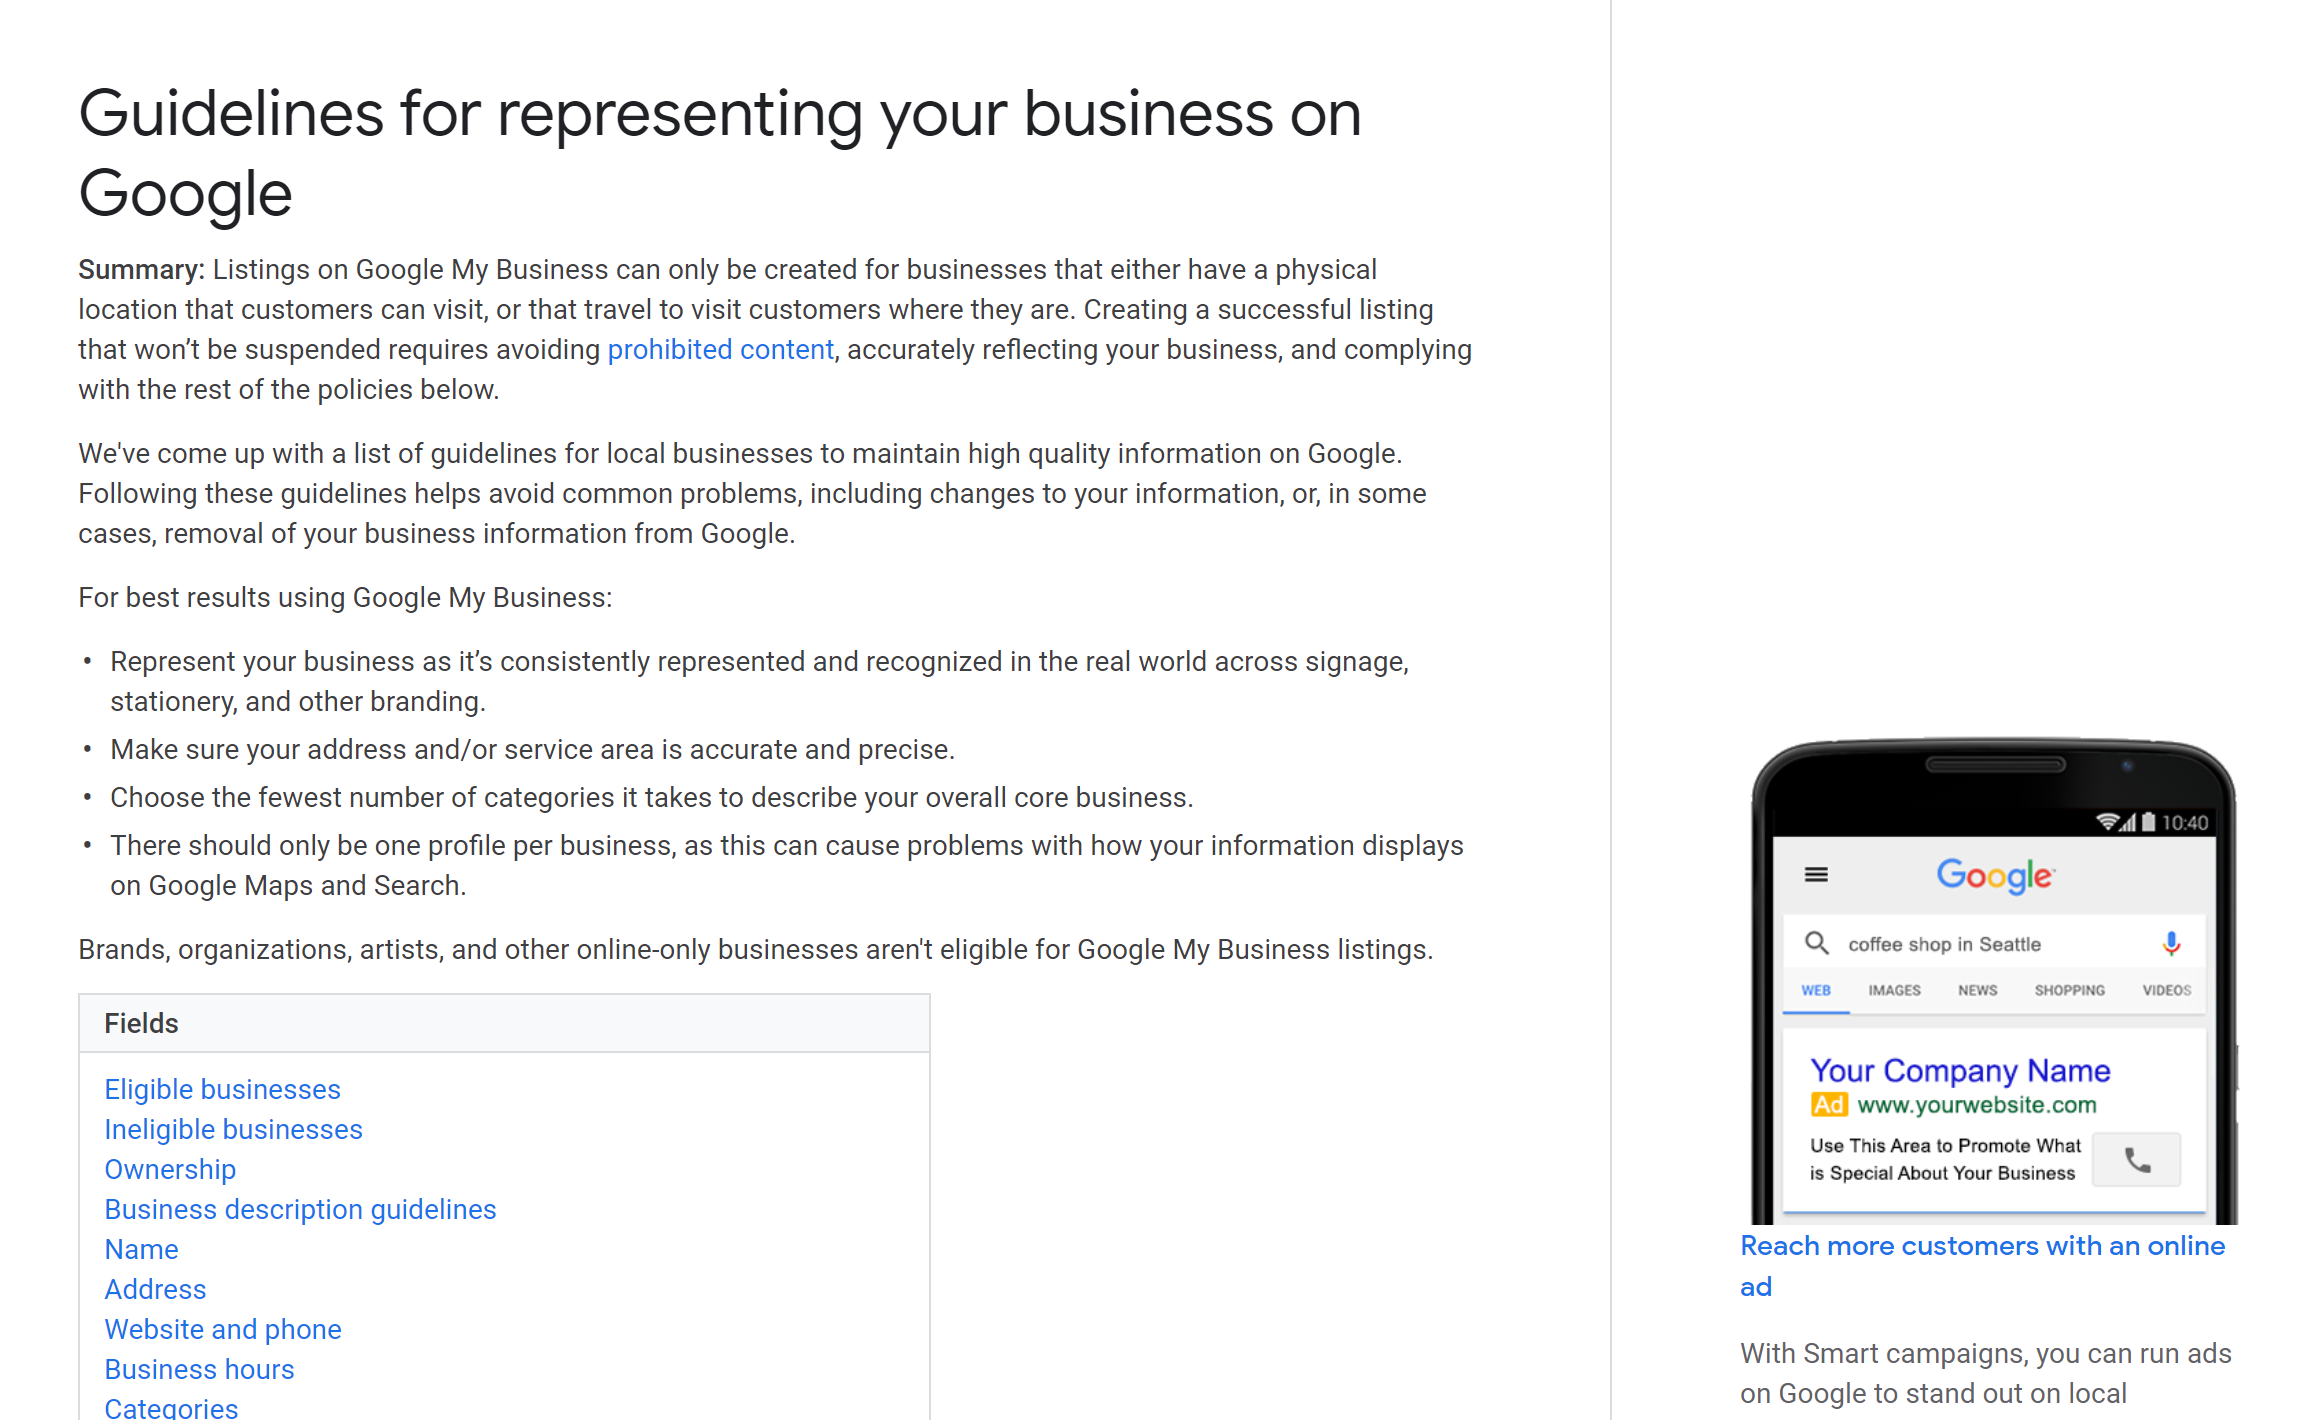 Guidelines for representing your business on Google